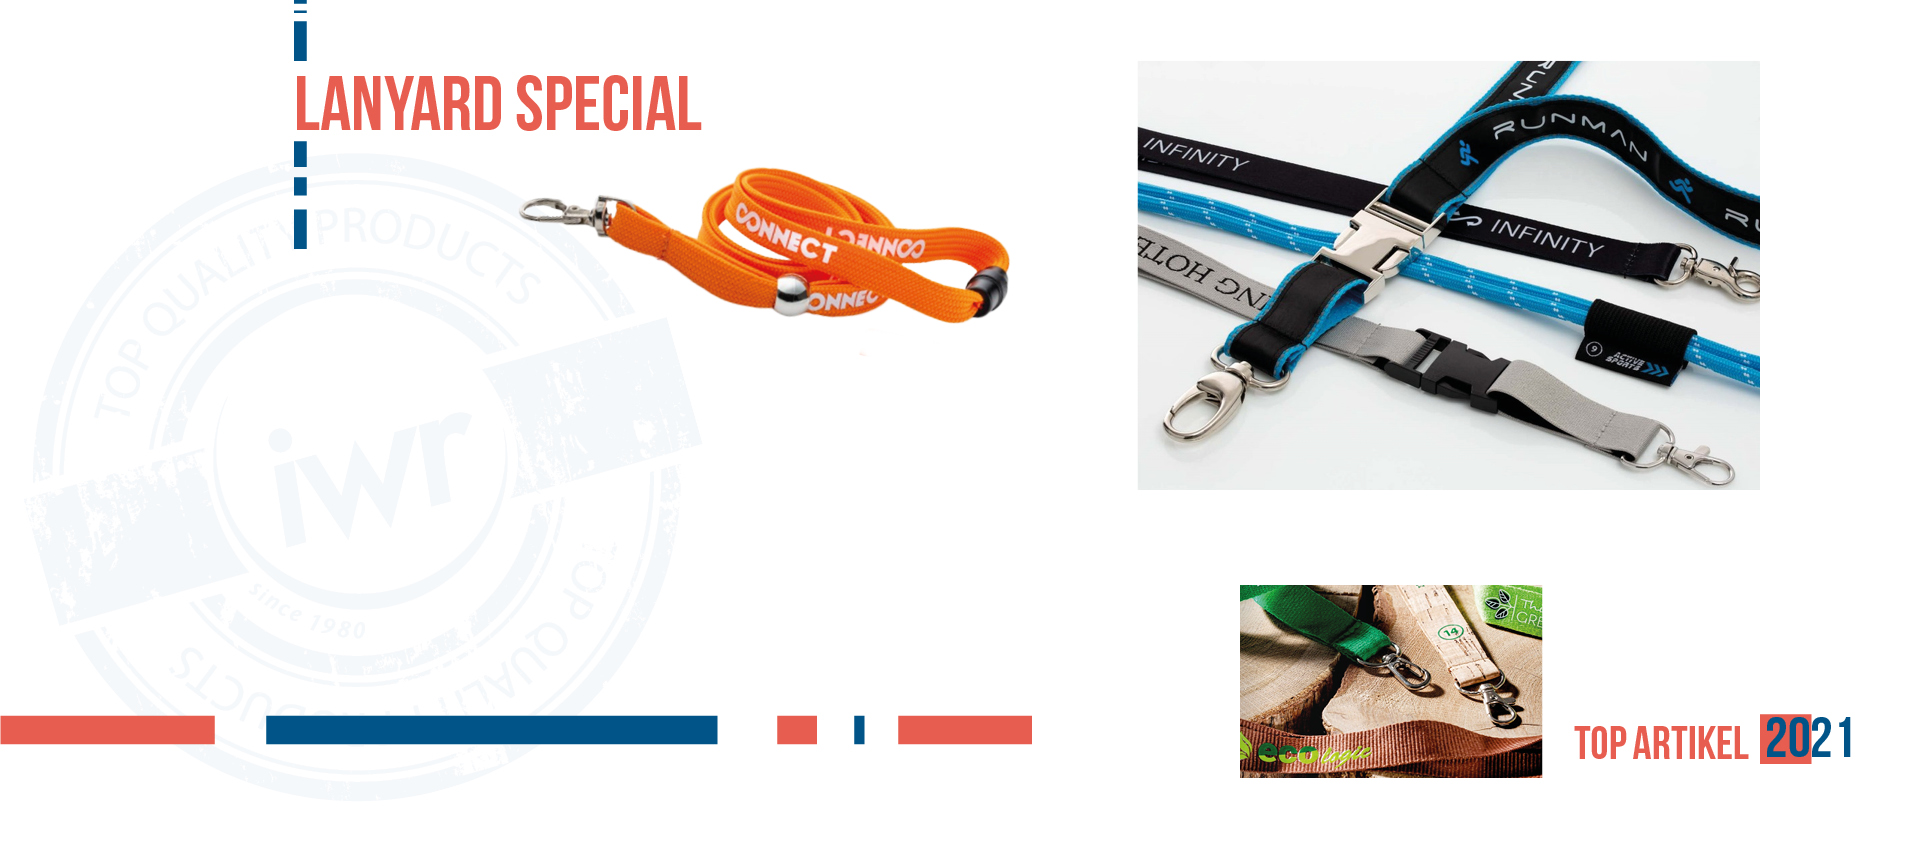 IWR Lanyard Special